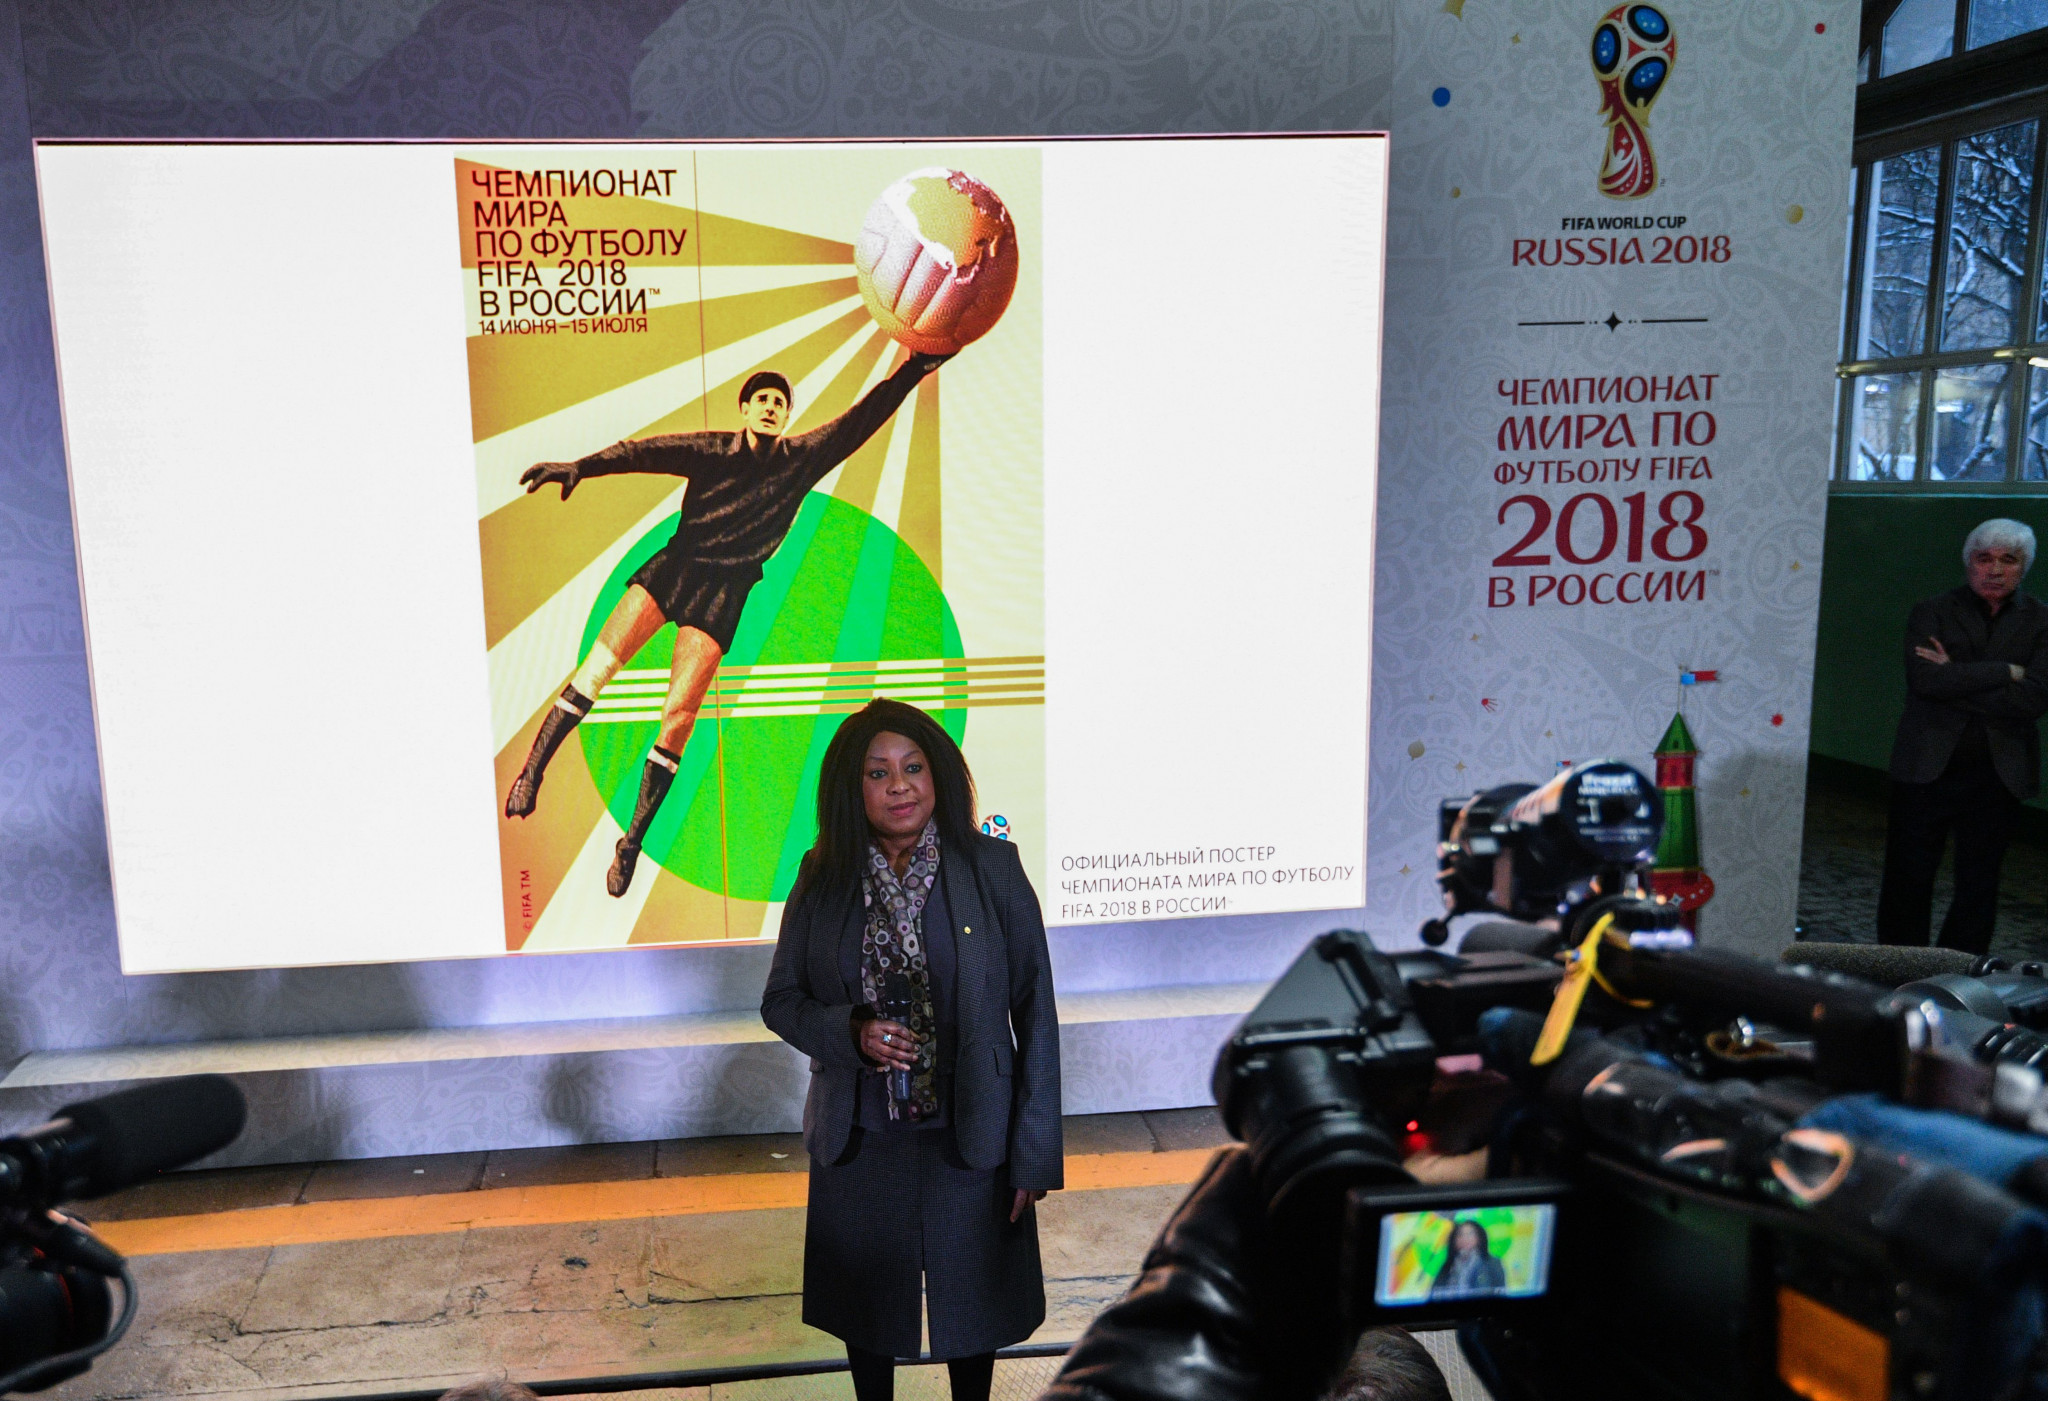 FIFA secretary general Fatma Samoura has insisted there is not widespread doping in Russian football amid fresh allegations ©Getty Images